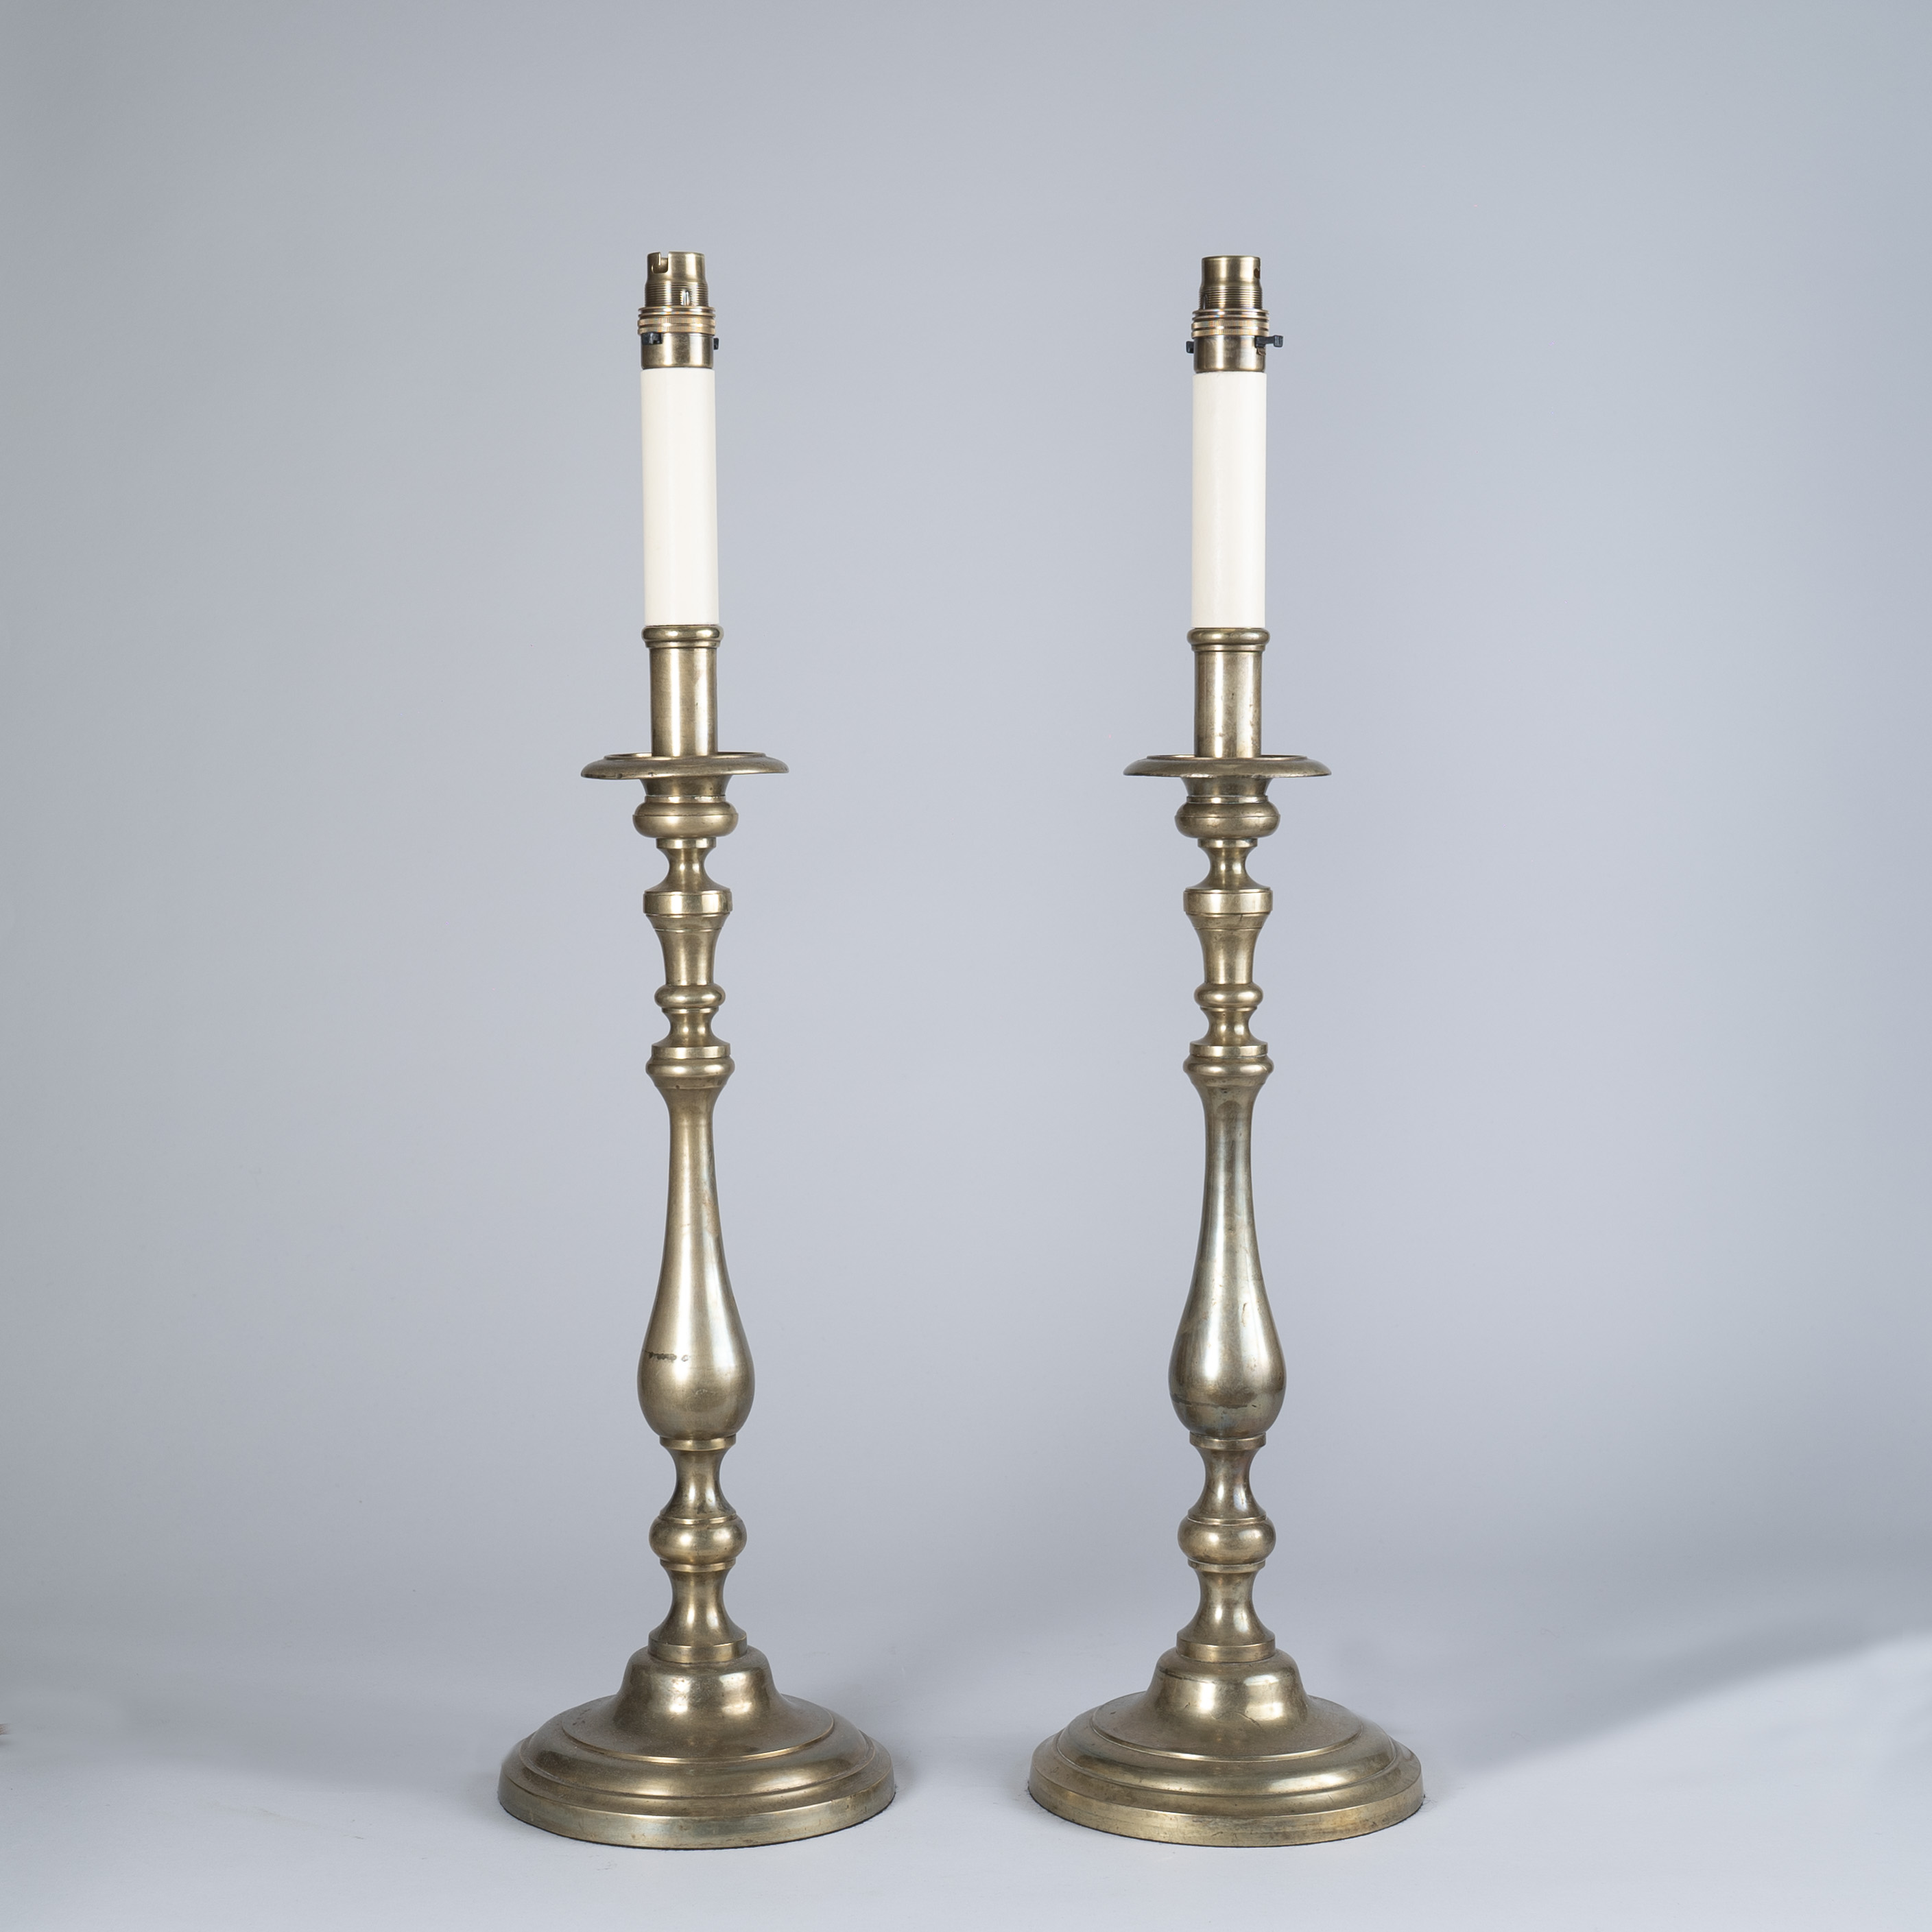 Tall pair of 19th Century Brass Candlesticks as lamps